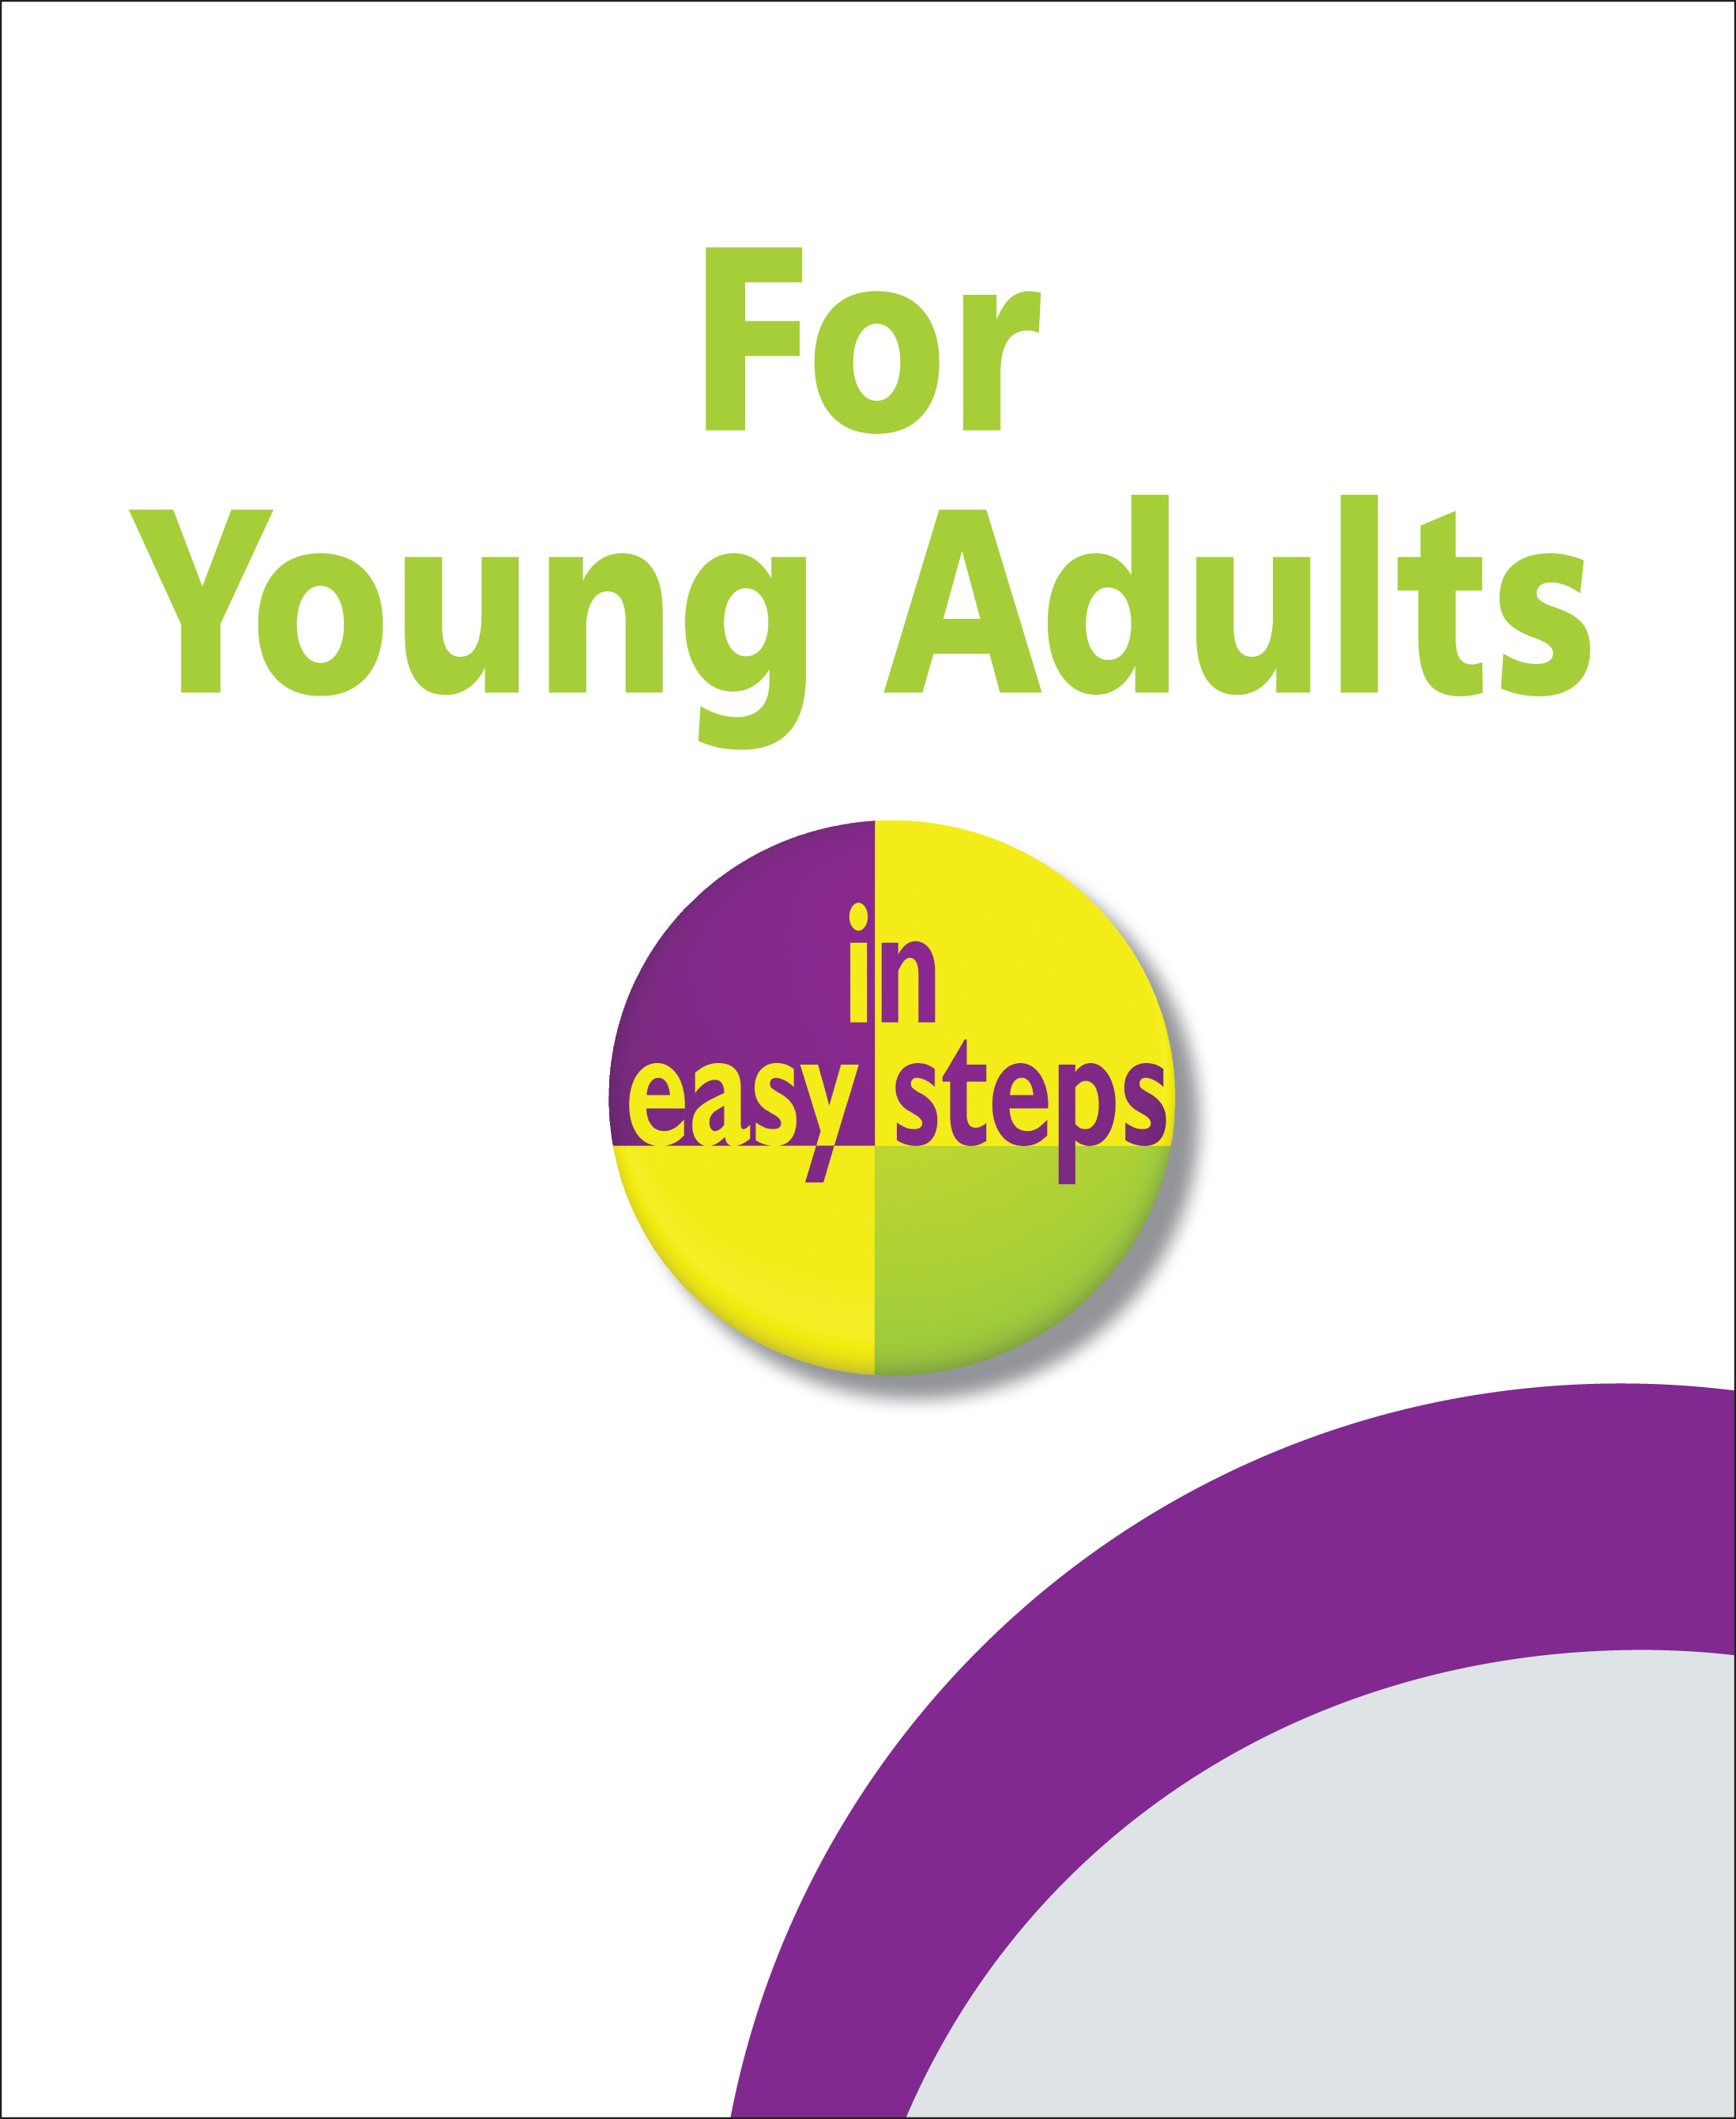 For Young Adults